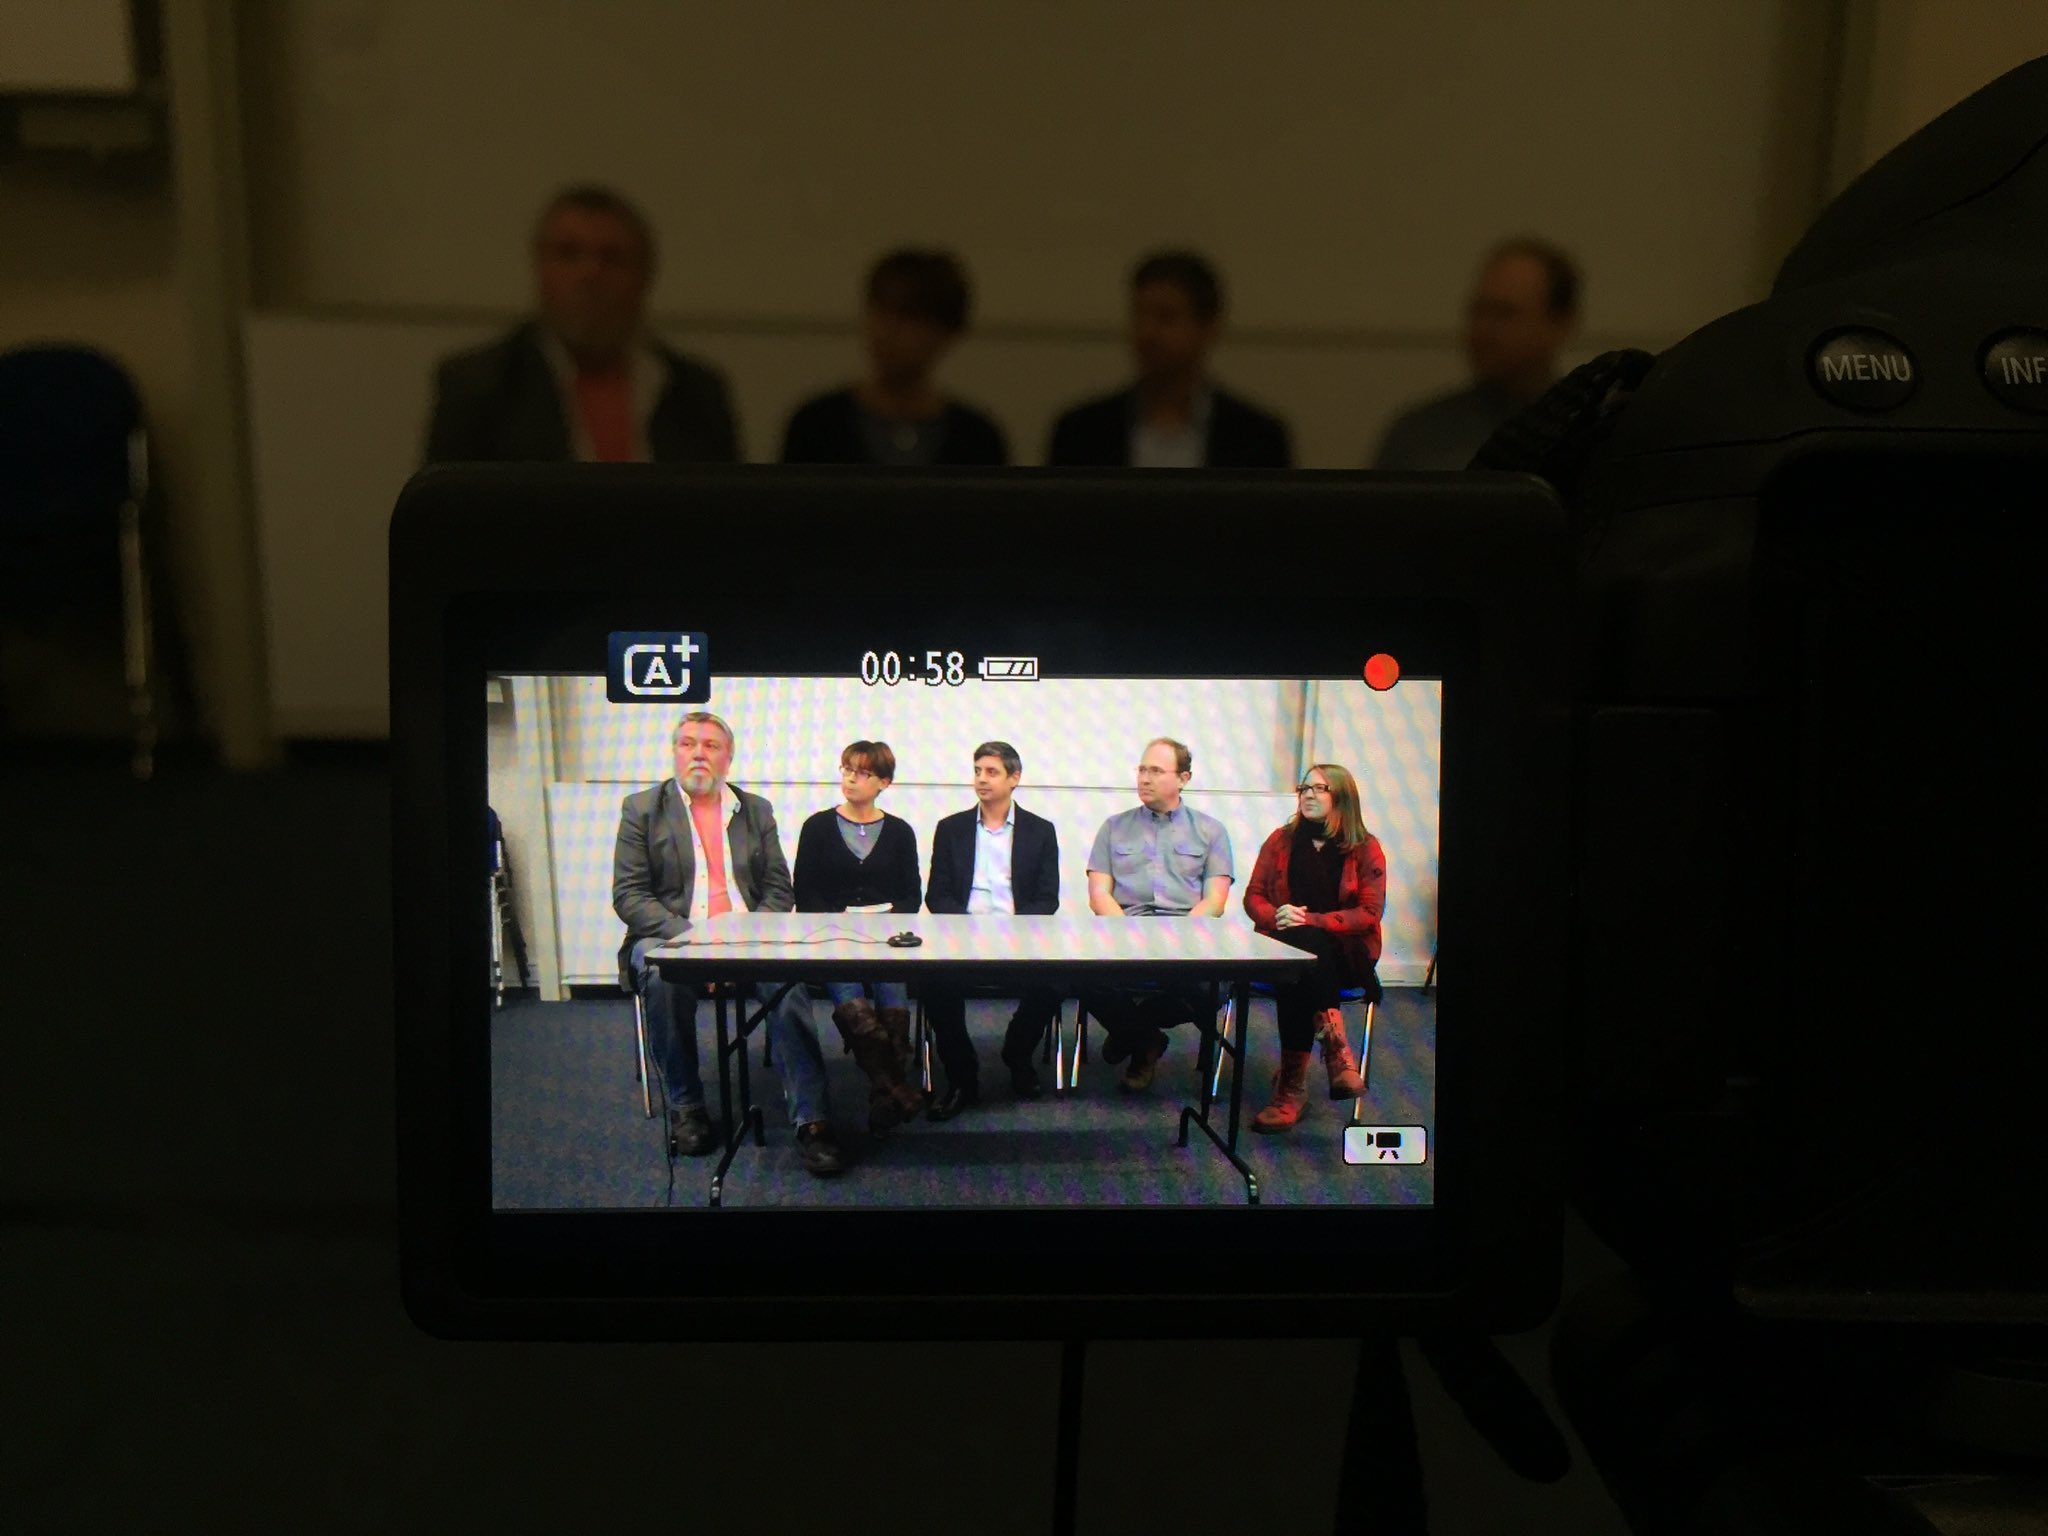 A Shot of the Live Panel